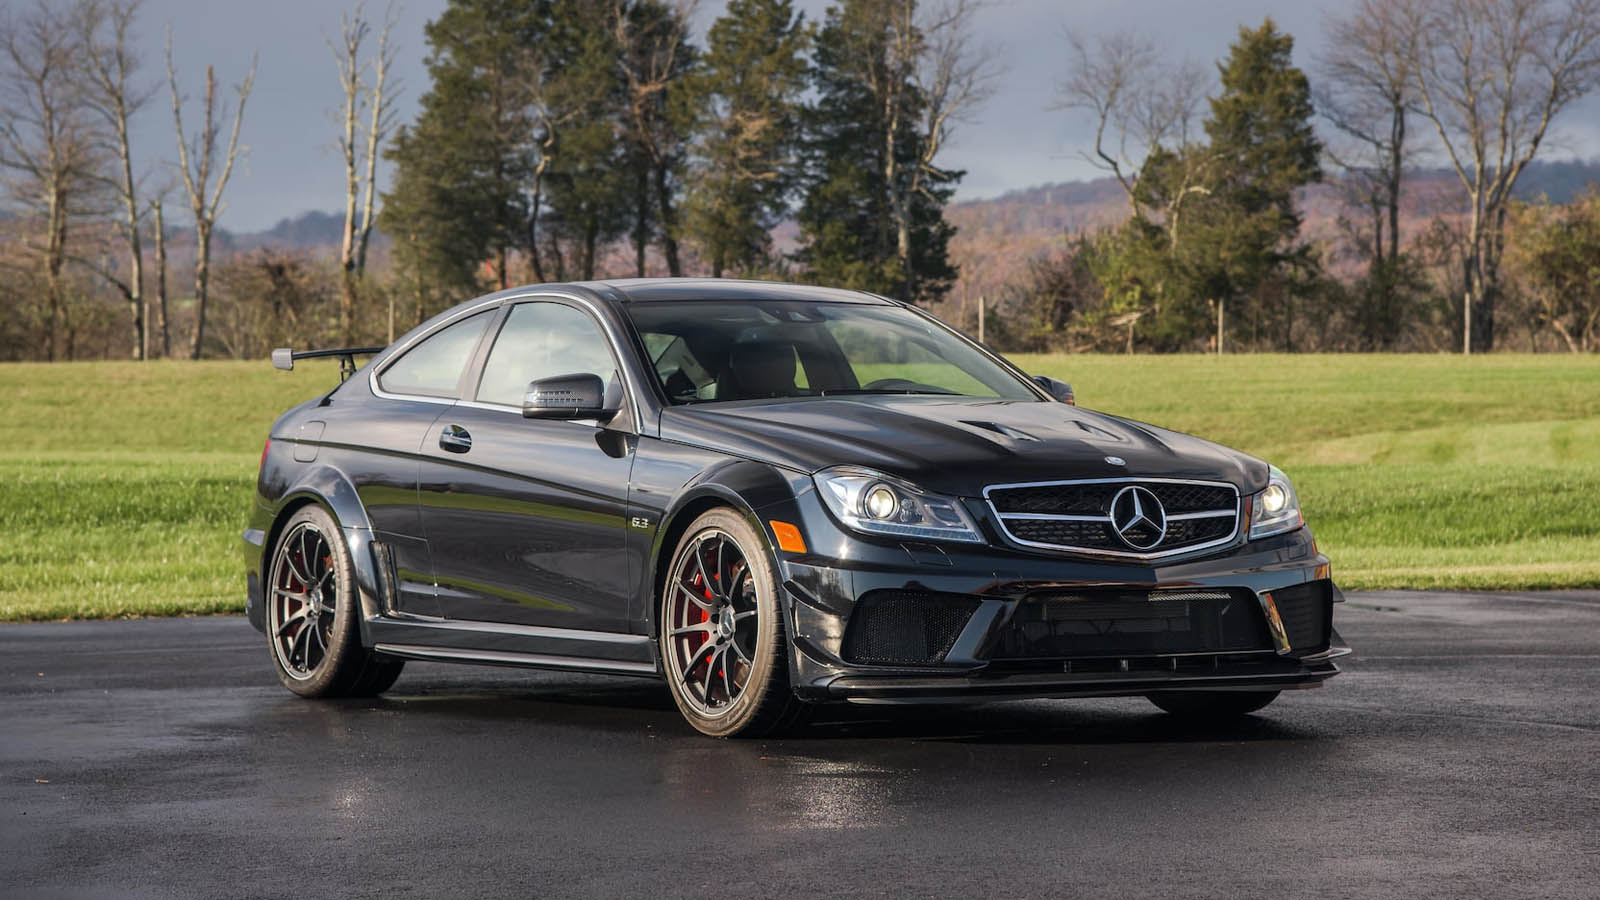 Merc Amg Black Series Collection Up For Sale In Florida